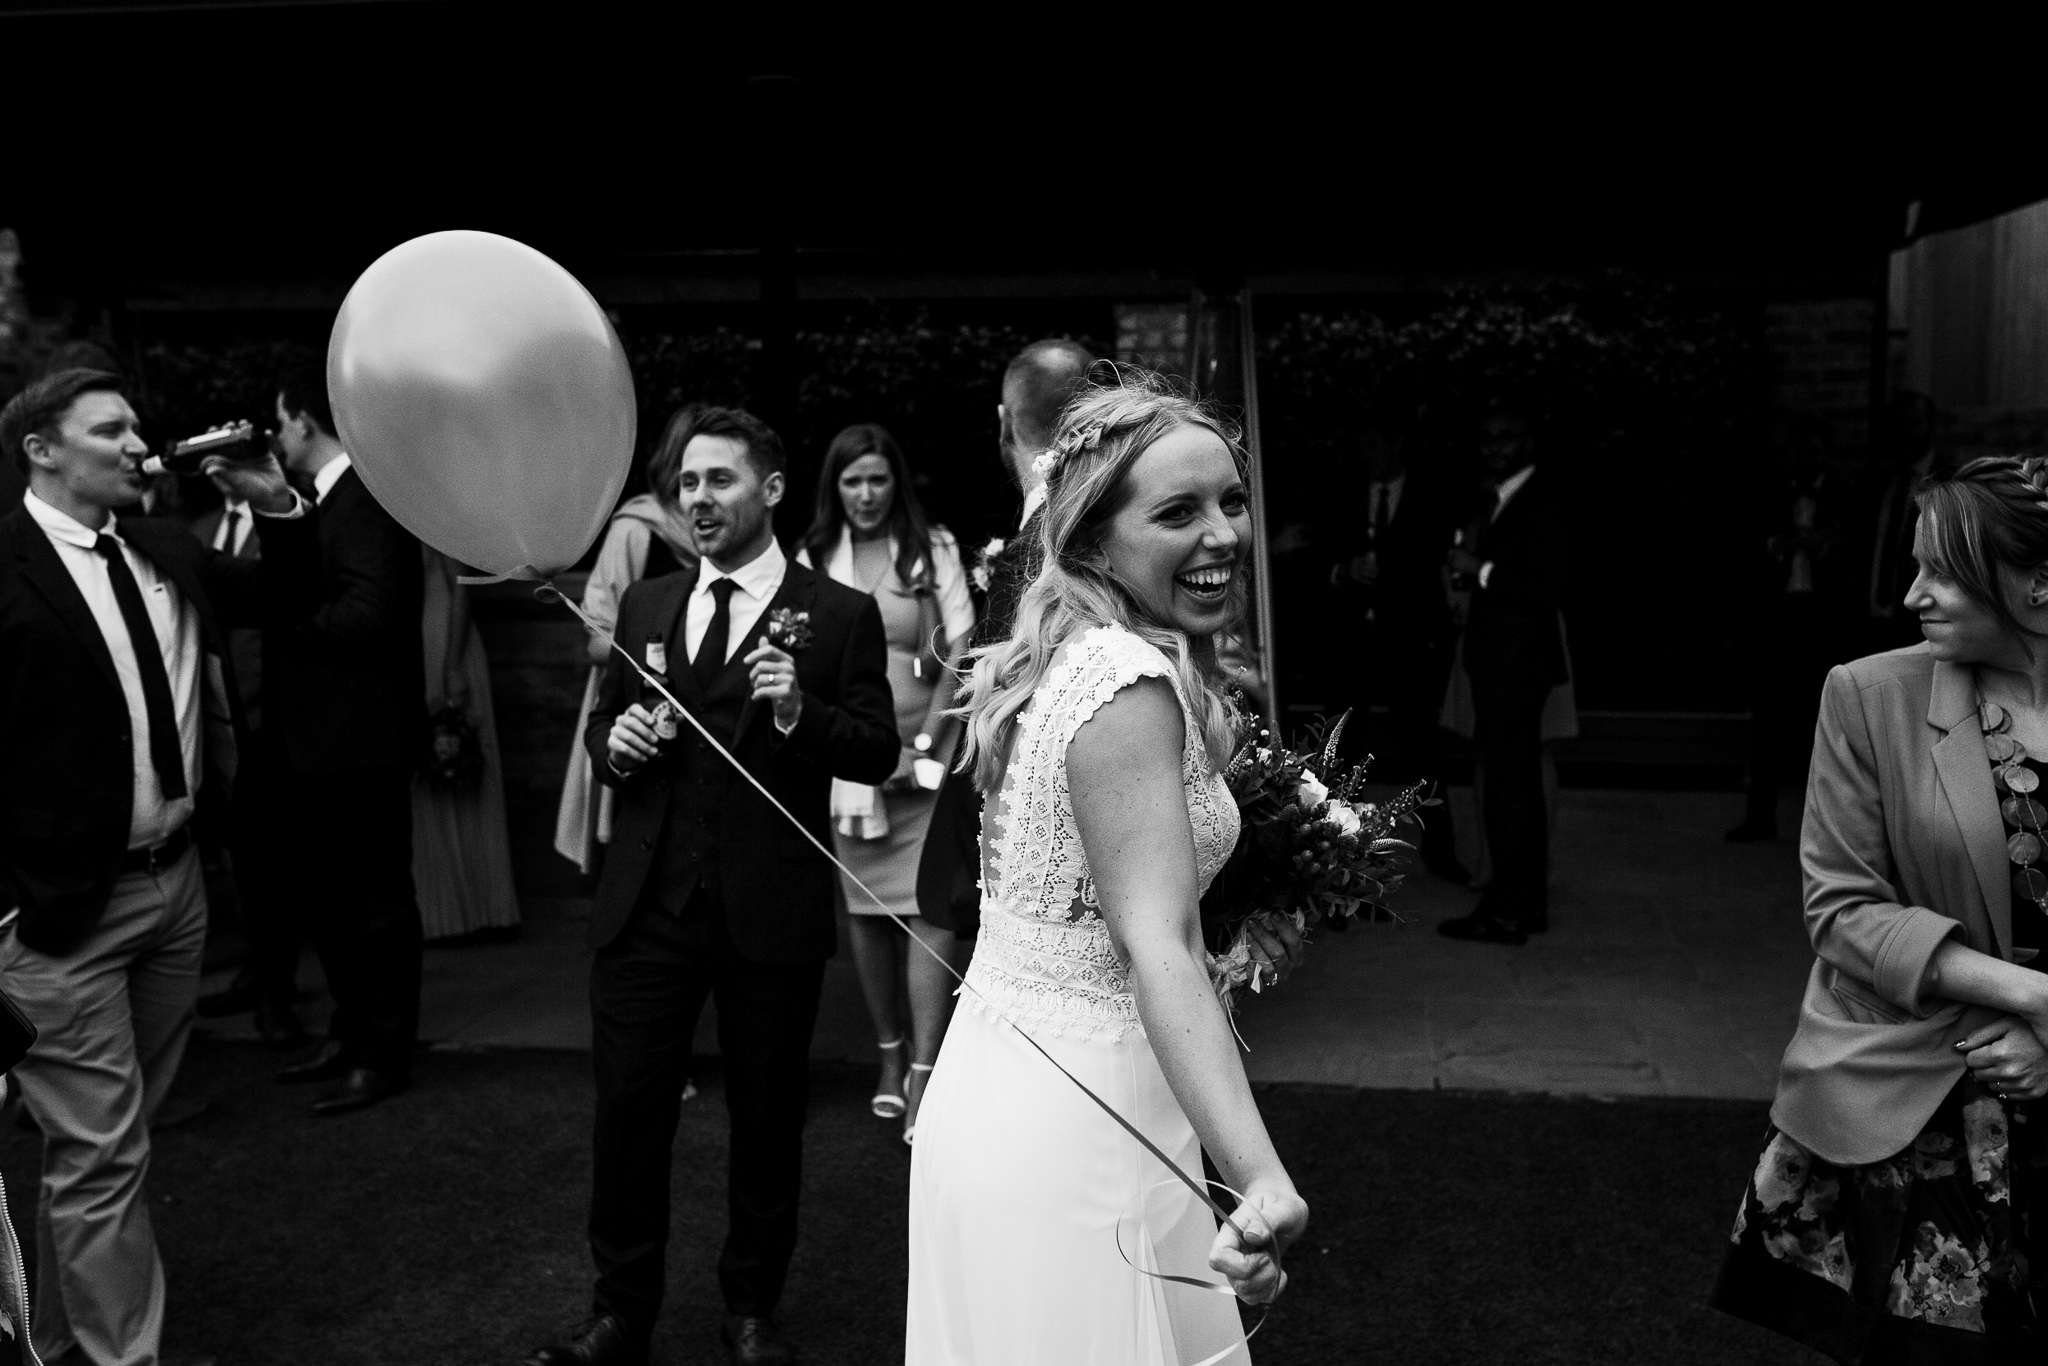 Beaming Bride at The Normans. Photo by www.timdunk.com